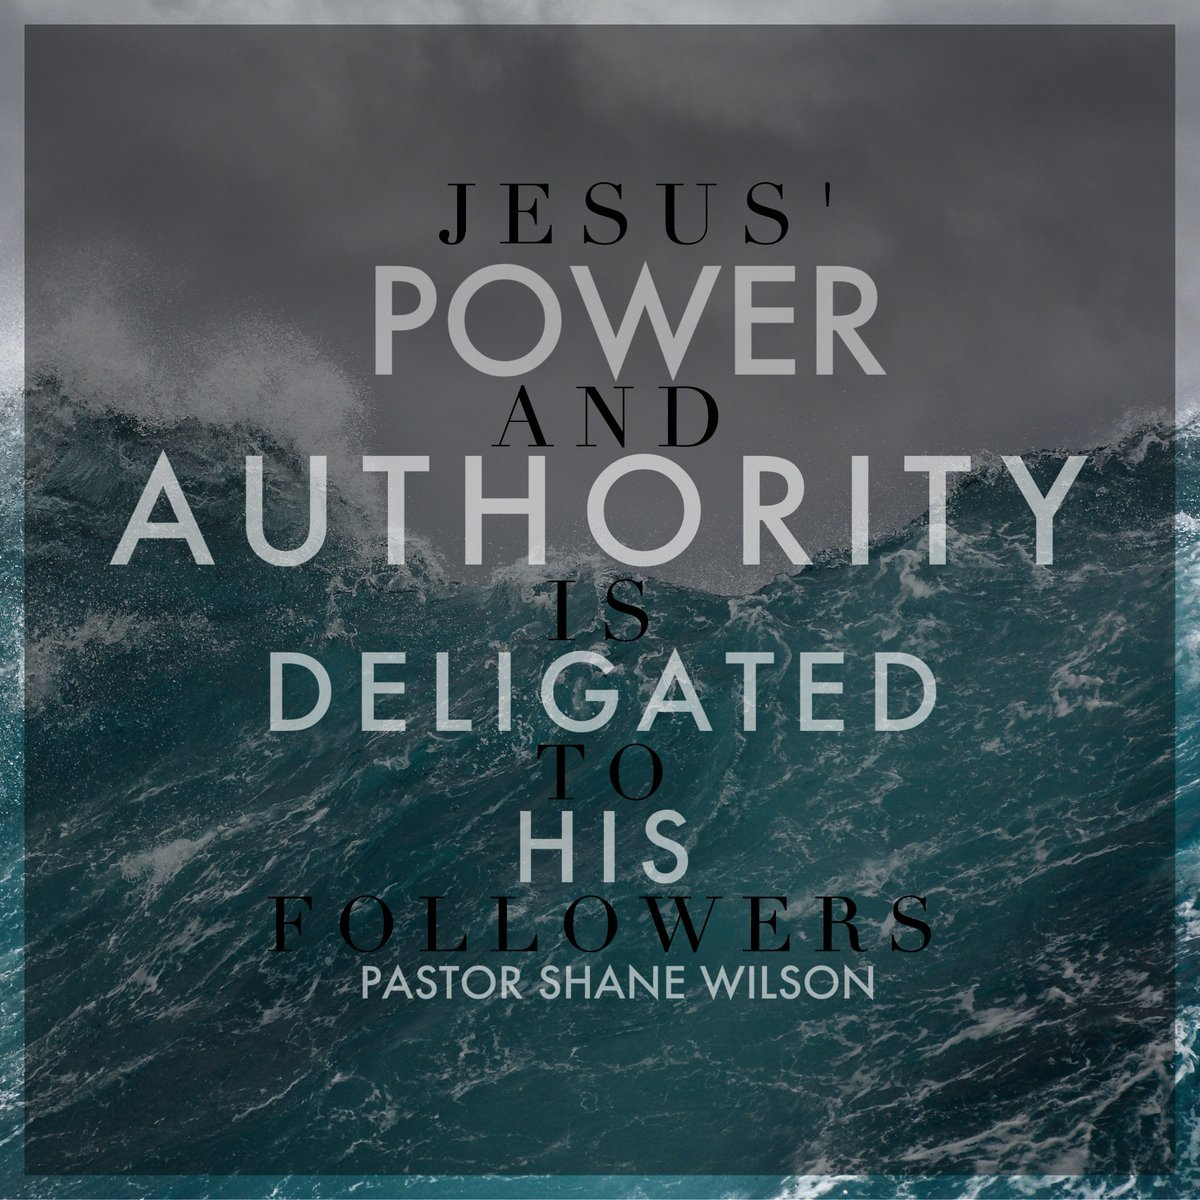 powere and authority Also called positional power, it is the power of an individual because of the relative position and duties of the holder of the position within an organization legitimate power is formal authority delegated to the holder of the position.